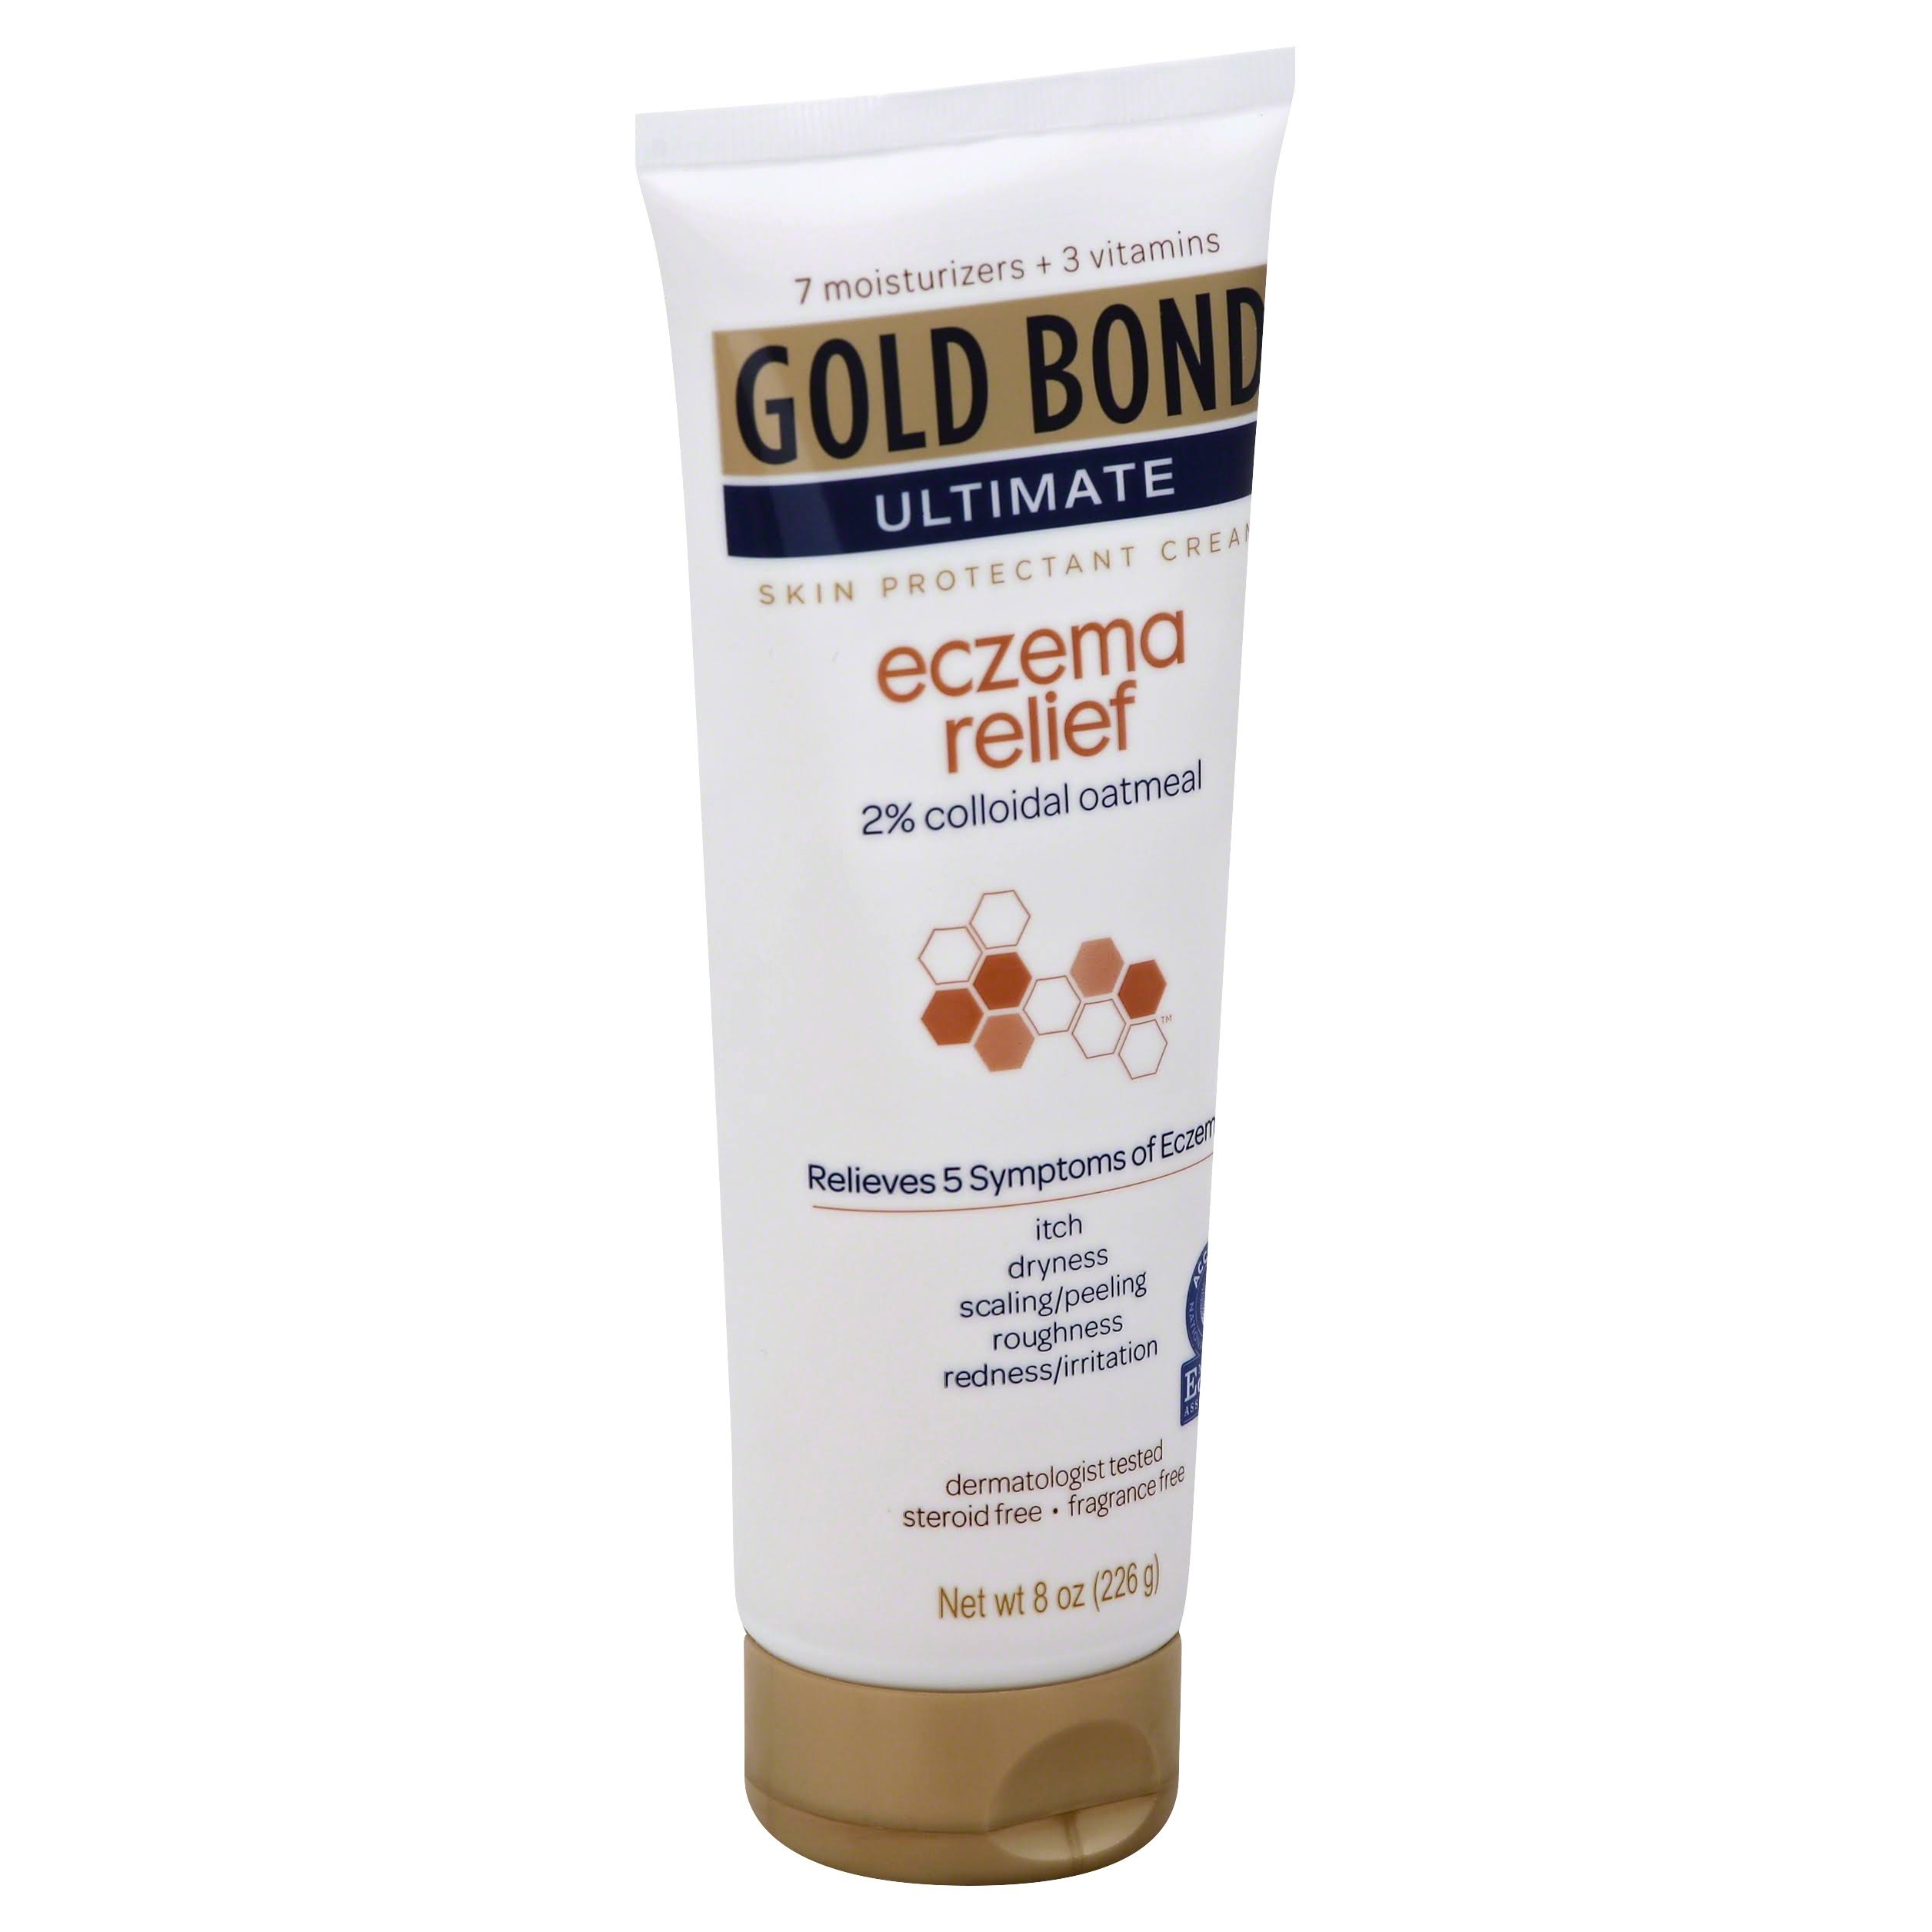 Gold Bond Ultimate Eczema Relief Skin Protectant Cream - 8 oz